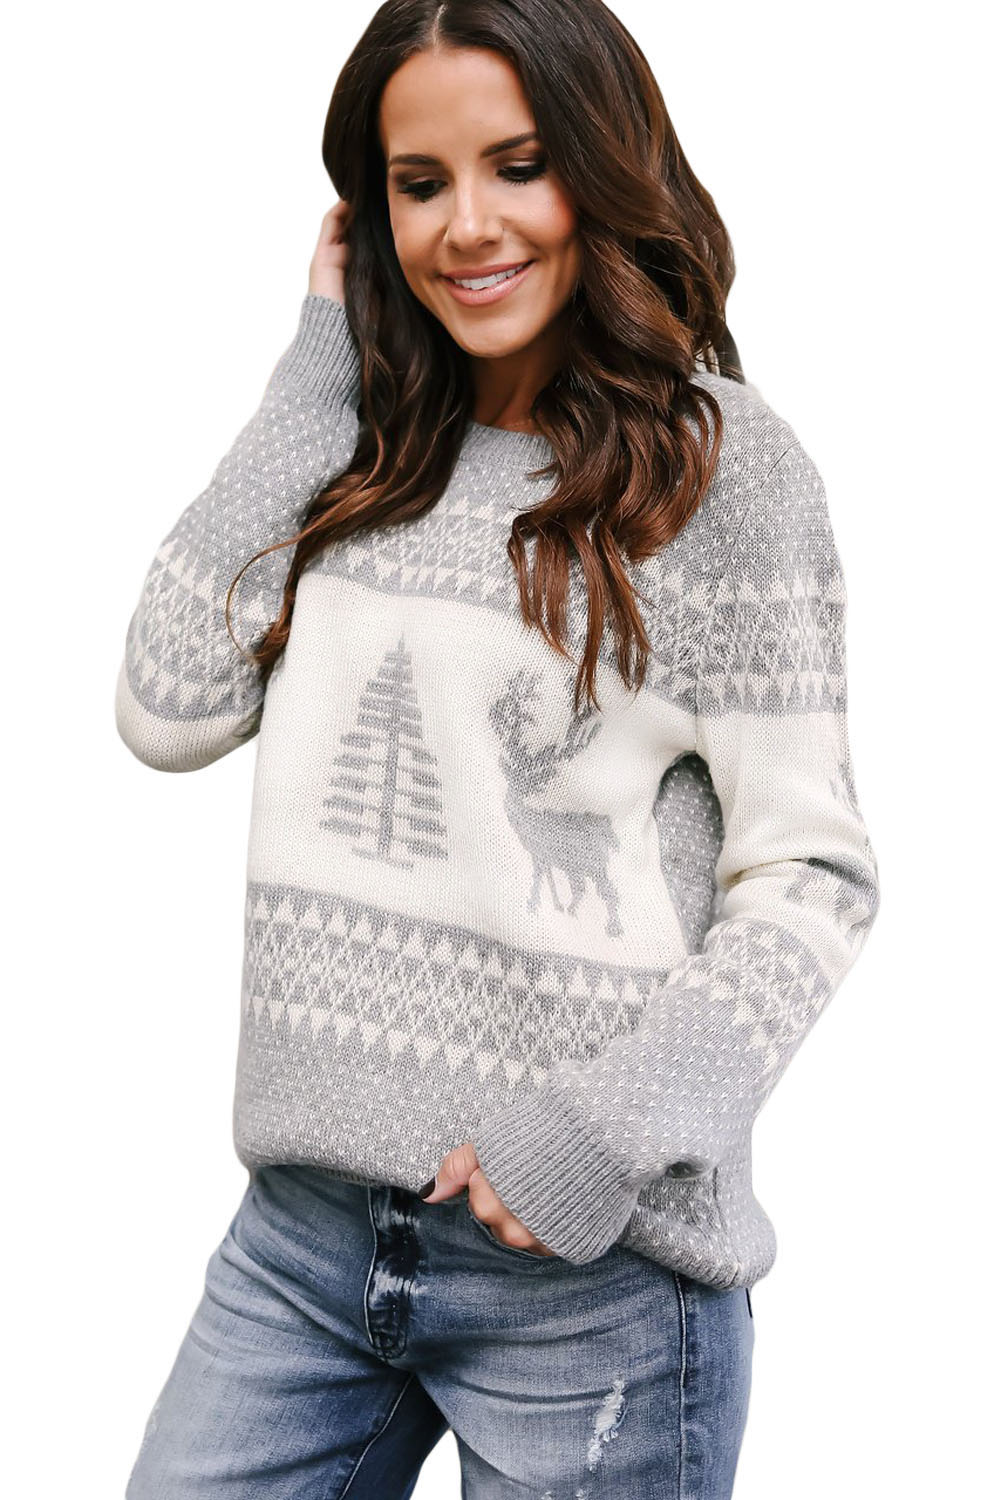 Wholesale Sweaters Amp Cardigans Cheap Grey White Reindeer And Christmas Tree Sweater Online